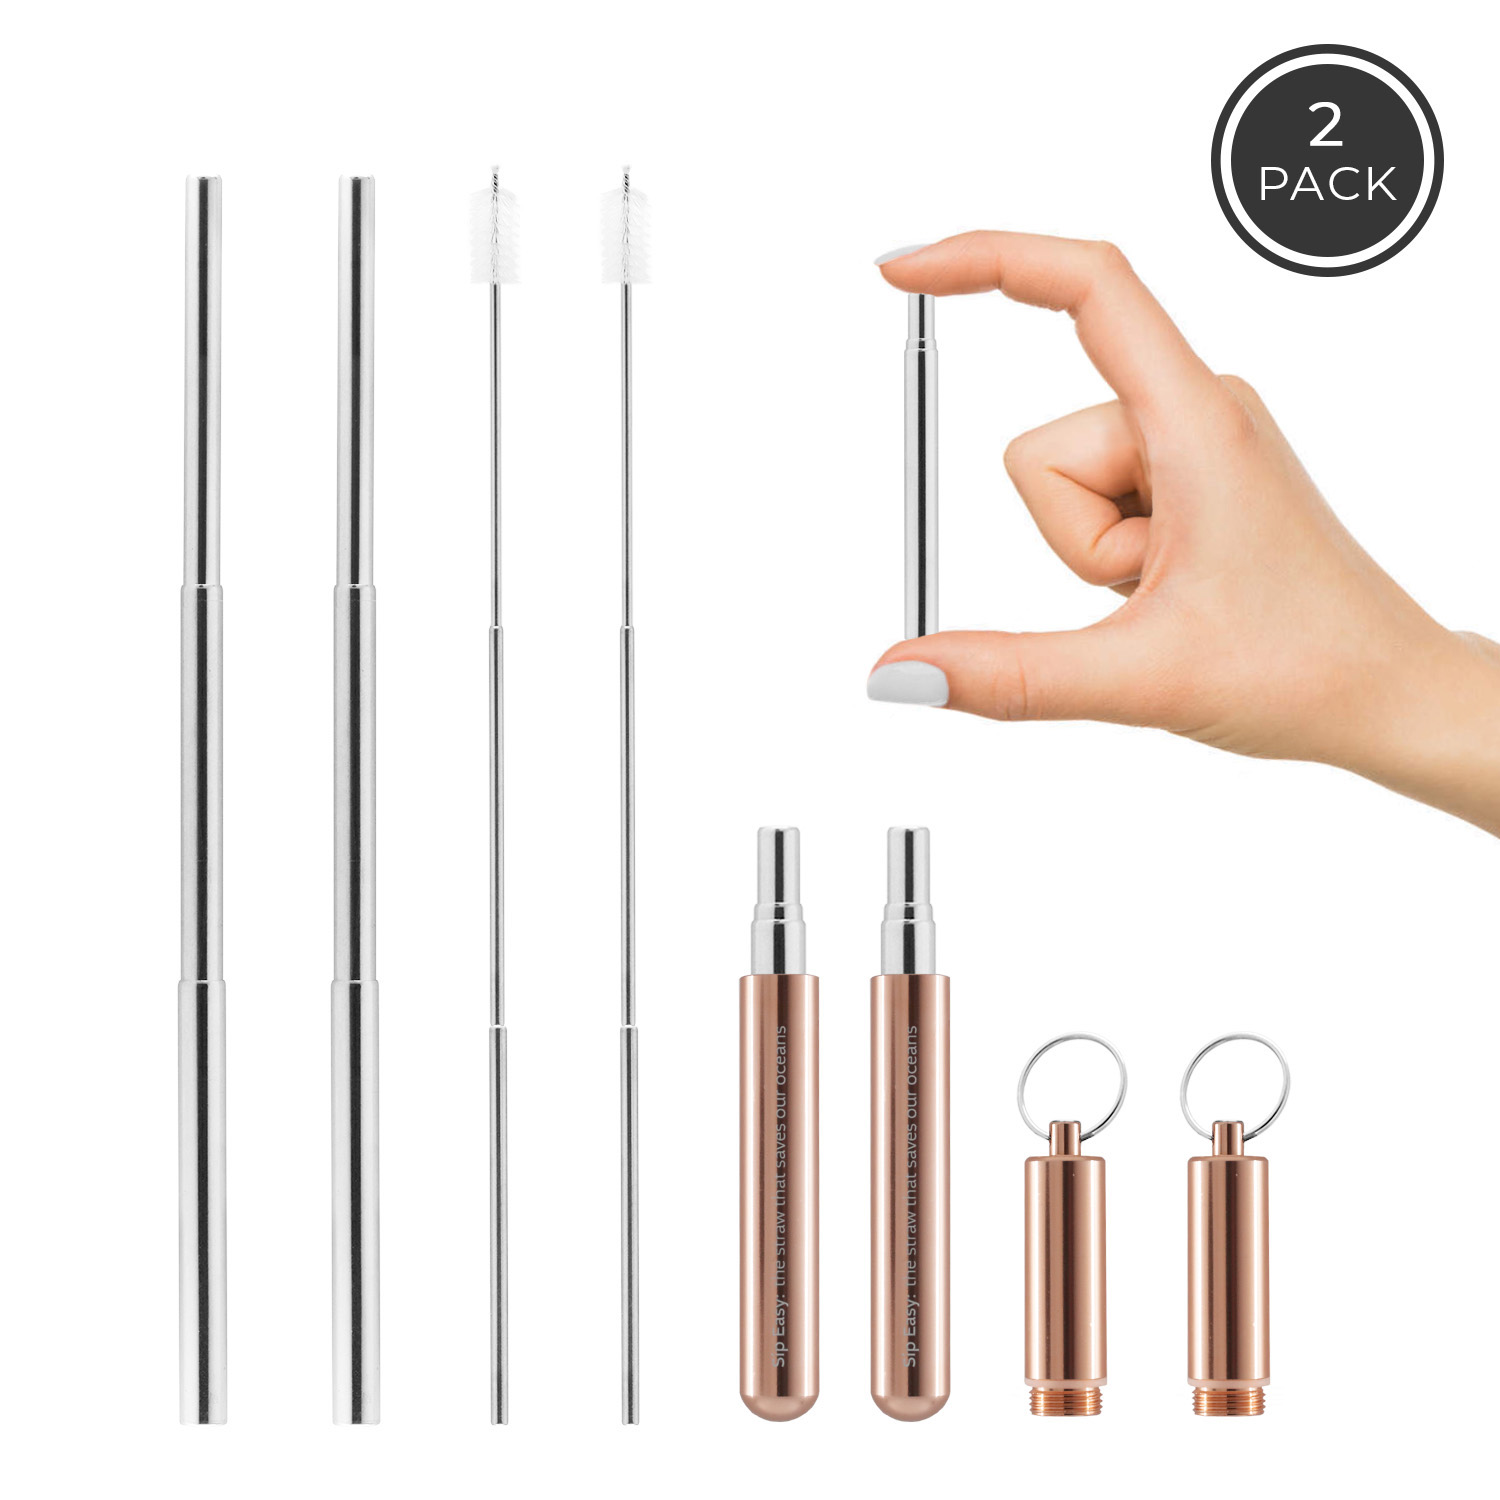 Collapsible stainless steel reusable straws